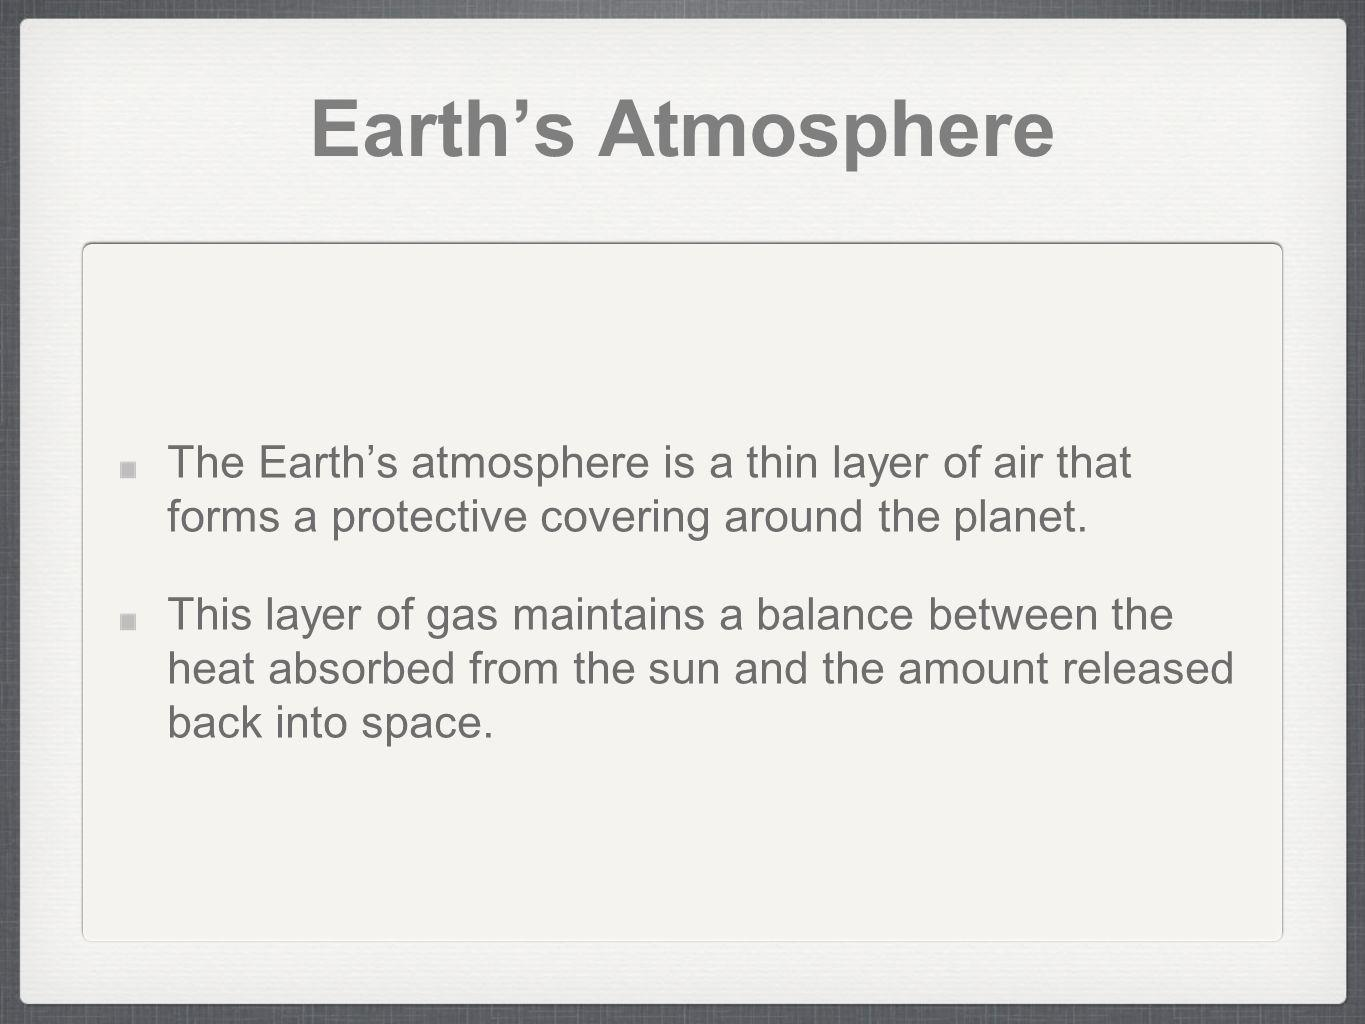 Earth's Atmosphere The Earth's atmosphere is a thin layer of air that forms a protective covering around the planet.